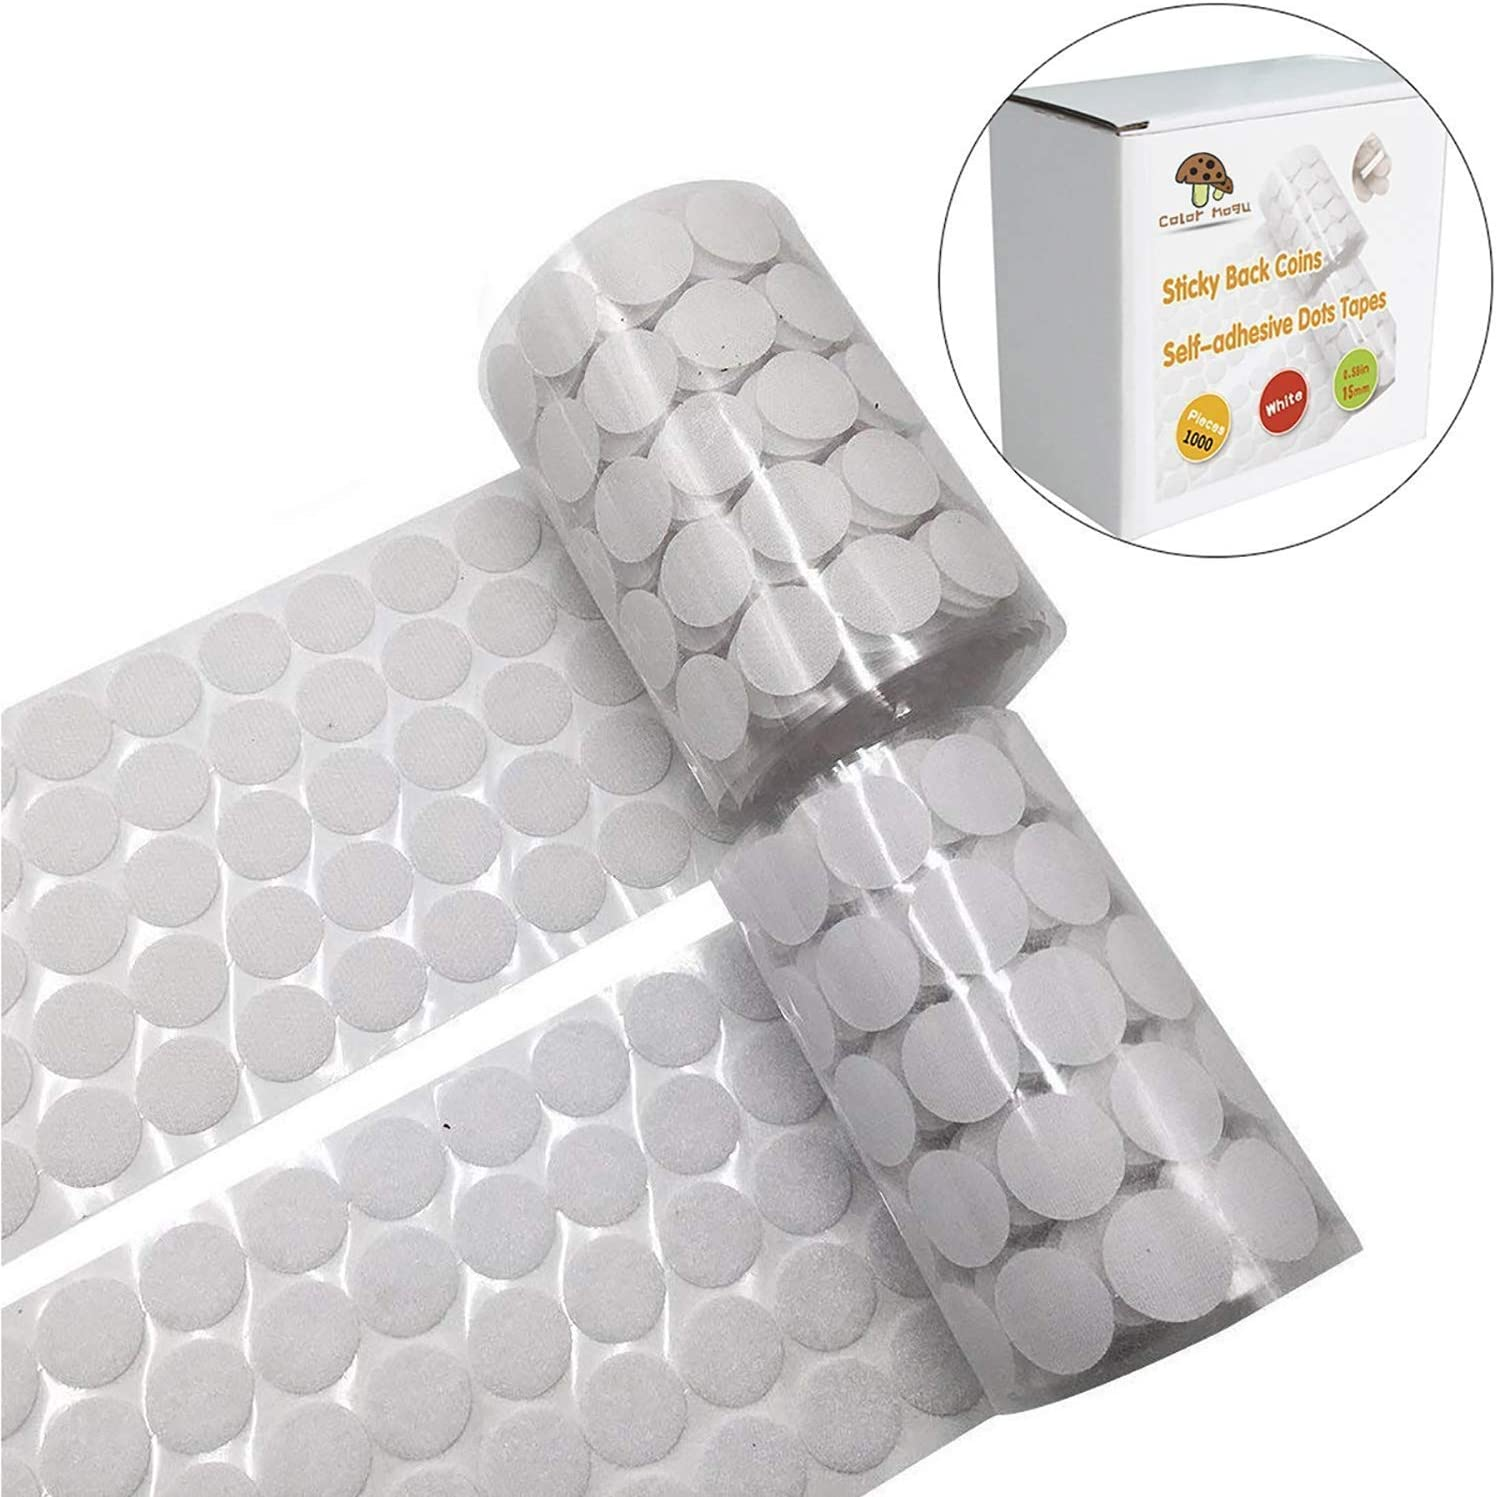 260 Pairs 3//4 Diameter Sticky Back Coins Nylon Coins Self Adhesive Dots White Perfect for School,Office Hompie 520pcs Hook /& Loop Dots with Waterproof Sticky Glue Coins Tapes Home